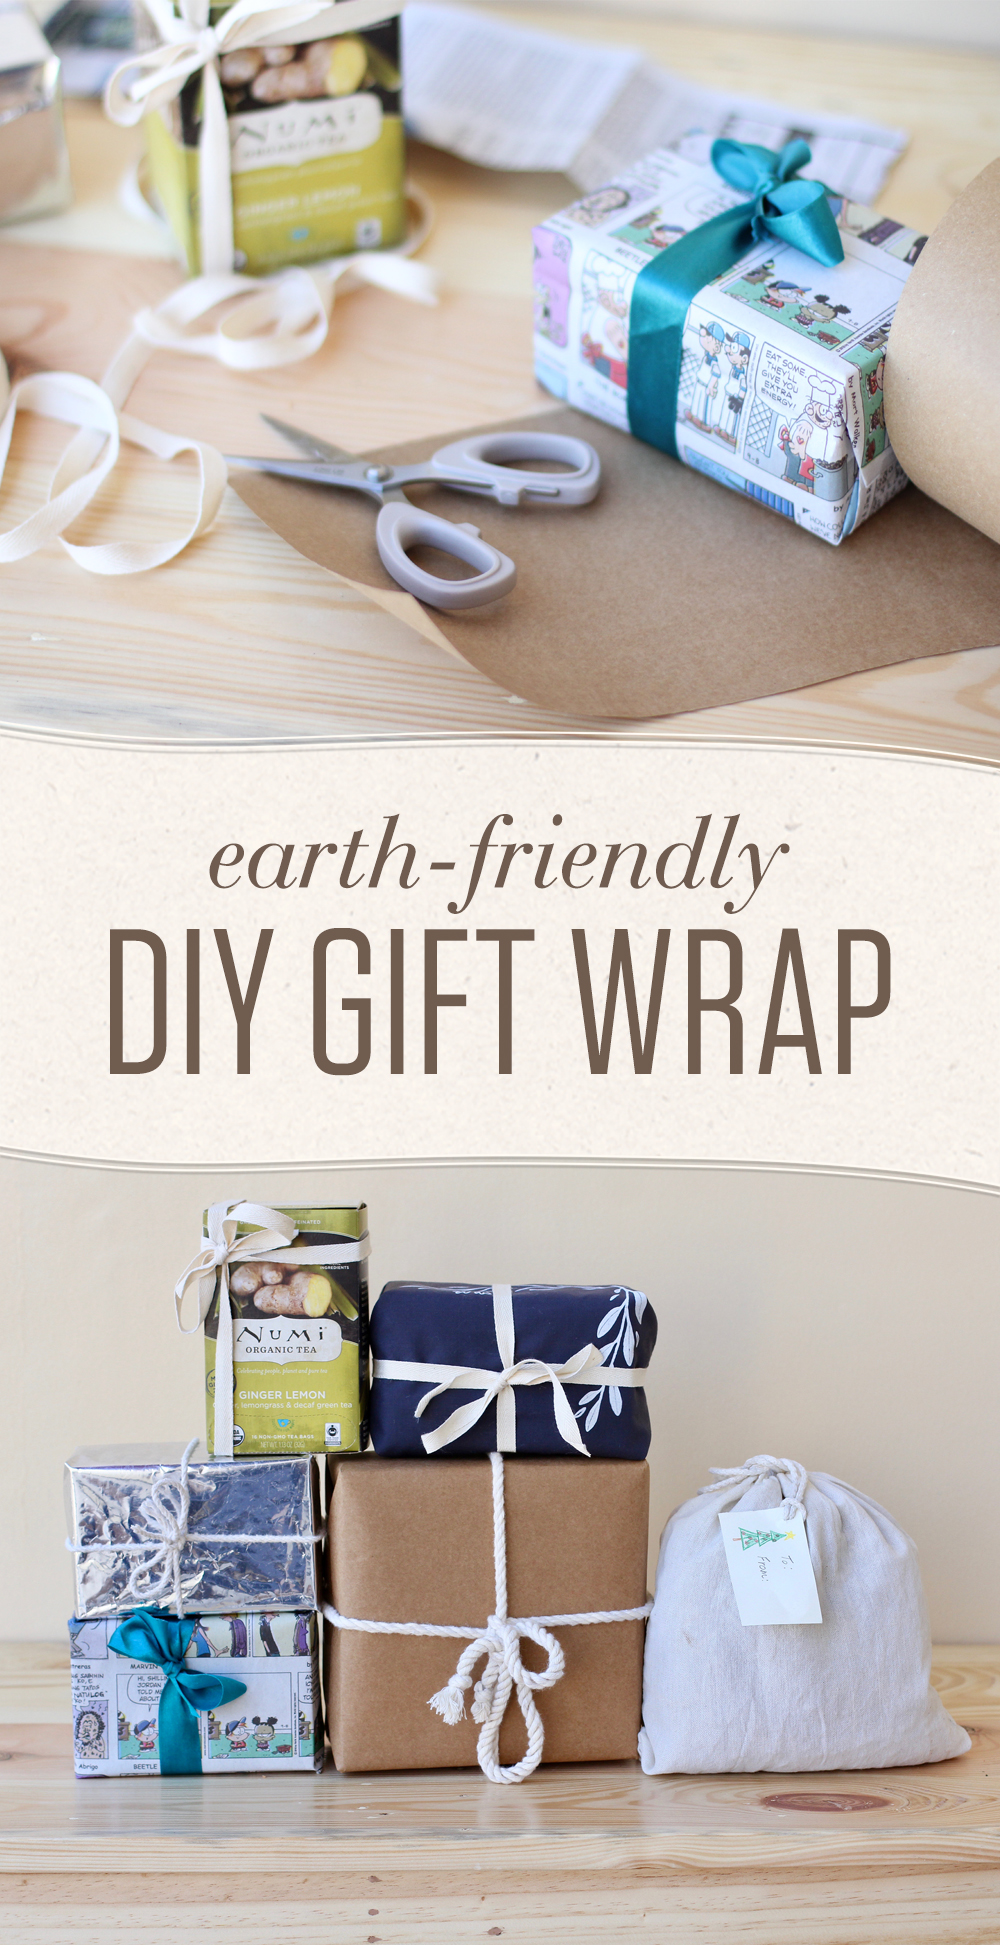 Five eco-friendly gift wrap ideas to make your holidays greener and reduce the amount of single use, plastic-coated materials that end up in landfills.